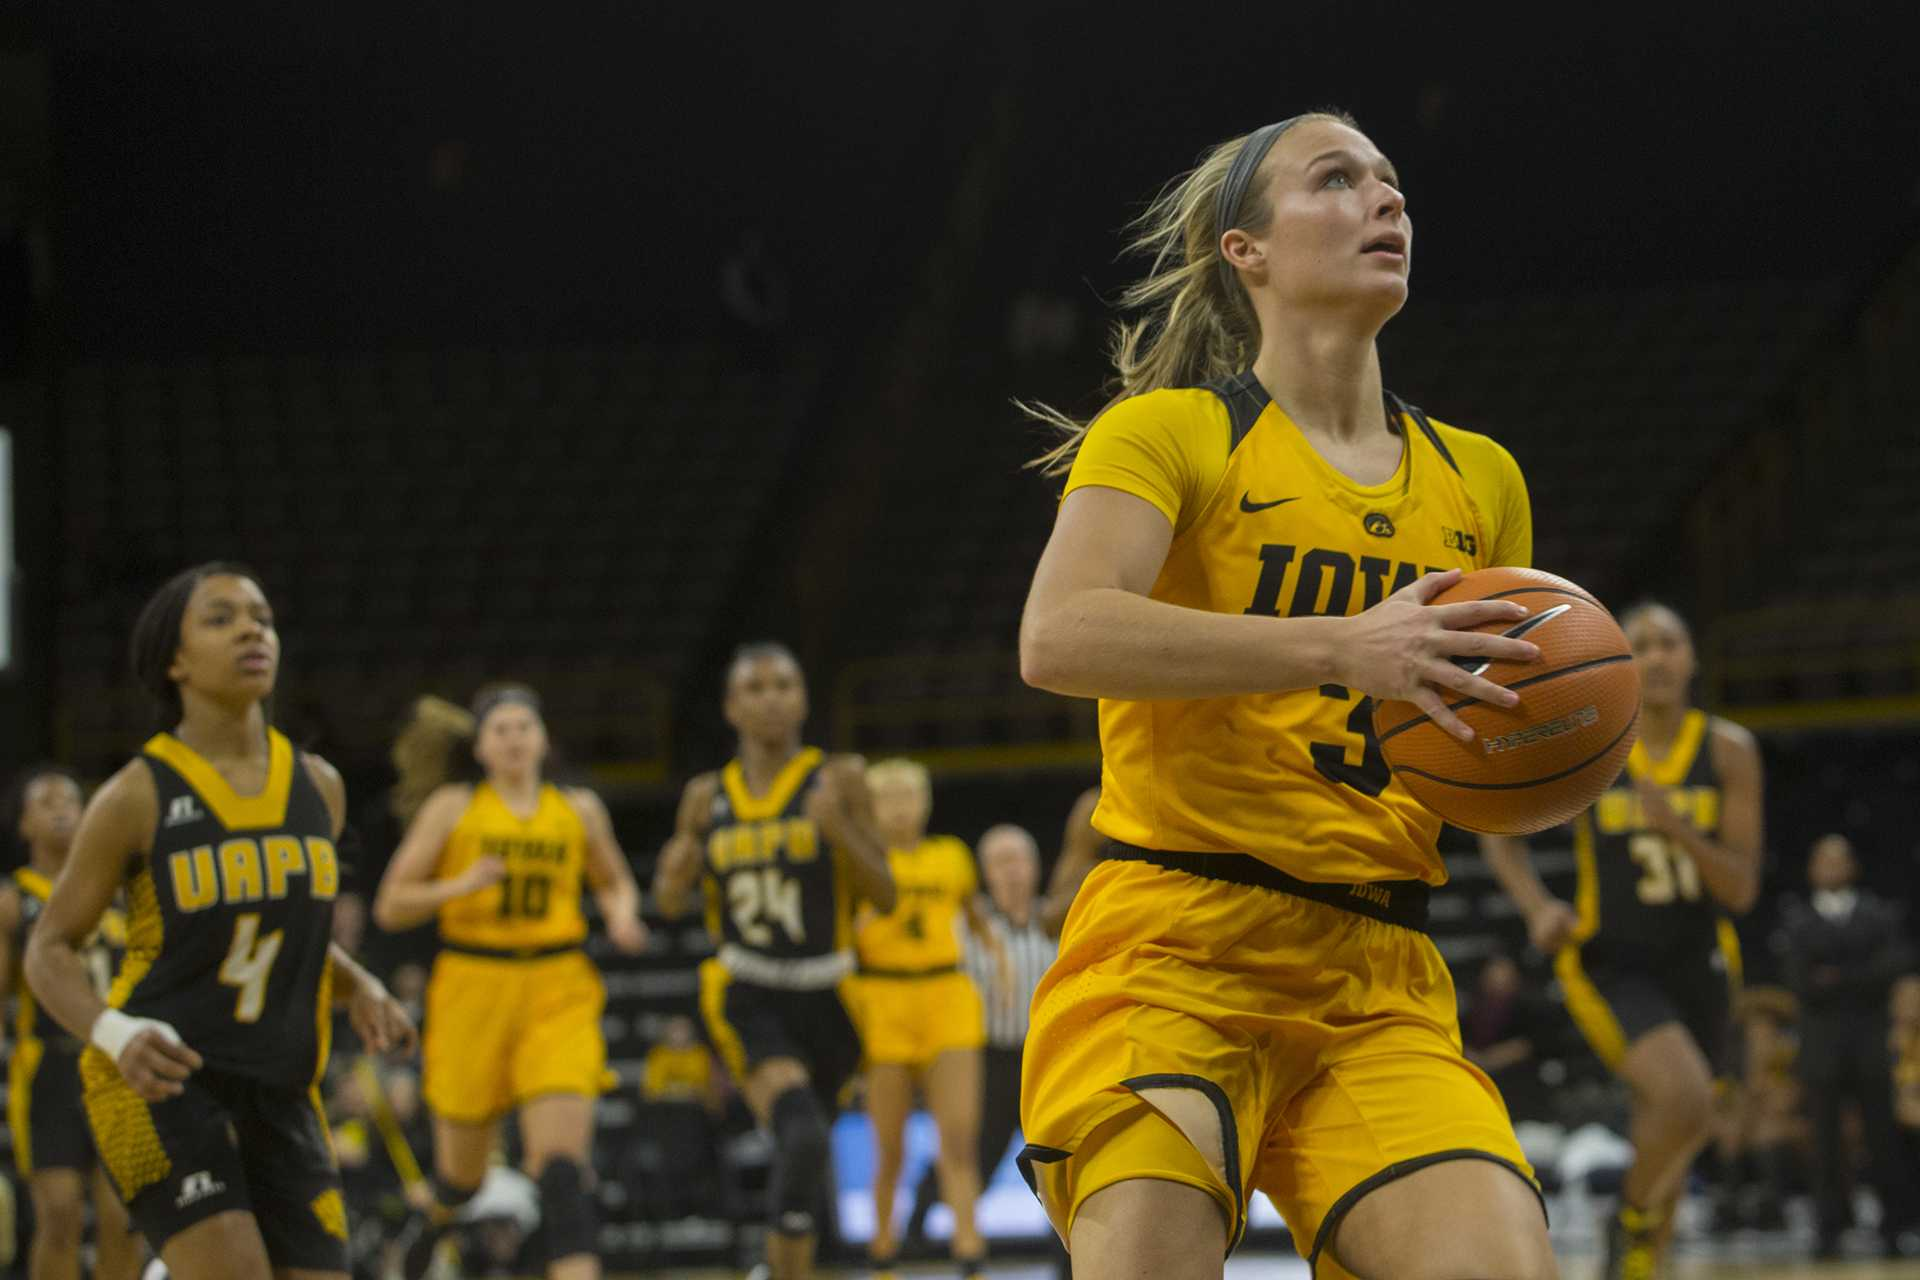 Iowa guard Makenzie Meyer looks to the hoop during the Iowa/Arkansas-Pine Bluff basketball game in Carver-Hawkeye Arena on Saturday, Dec. 9, 2017. The Hawkeyes defeated the Golden Lions, 85-45. (Lily Smith/The Daily Iowan)